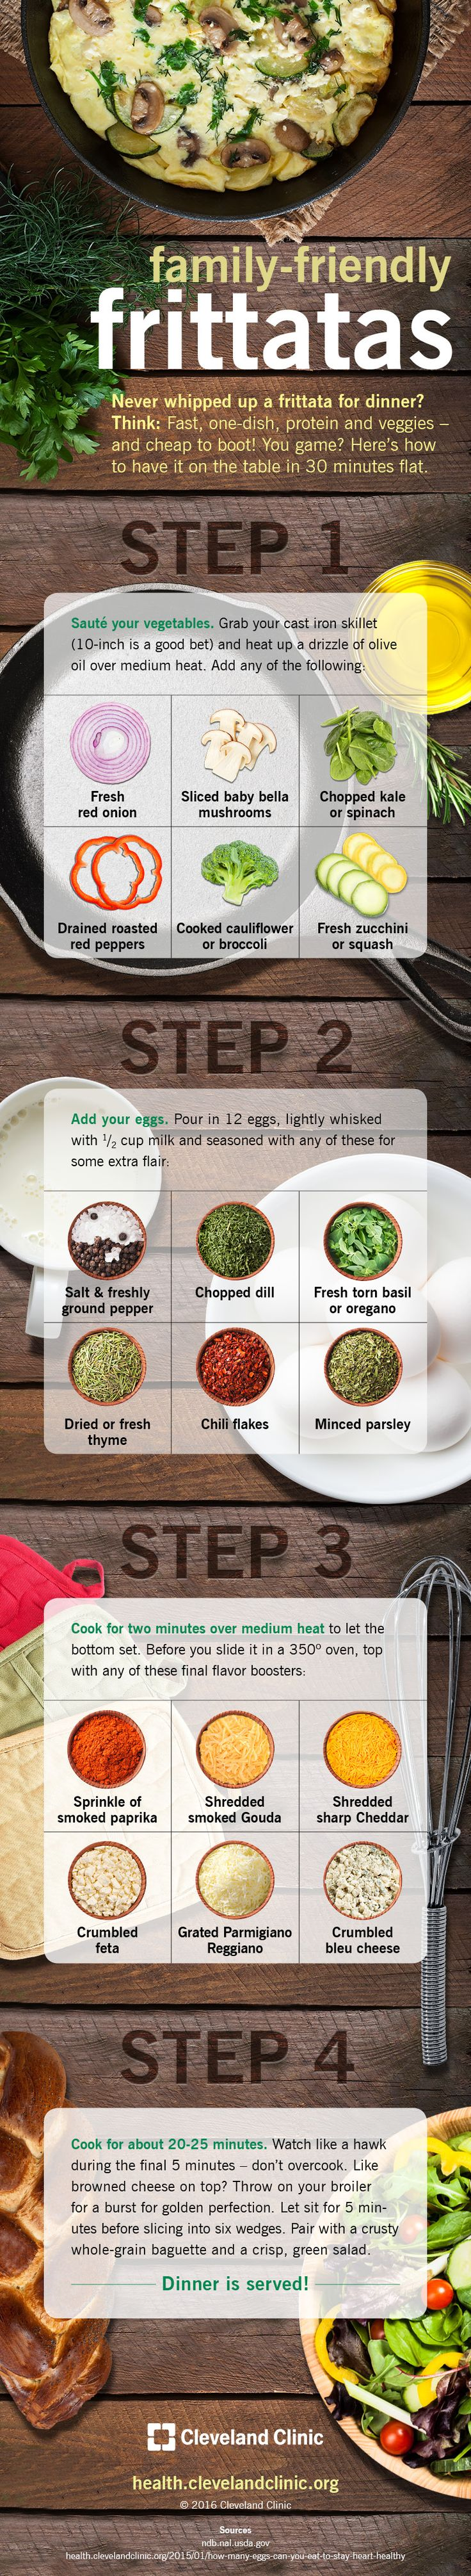 How to Make a Family-Friendly Frittata (Infographic)